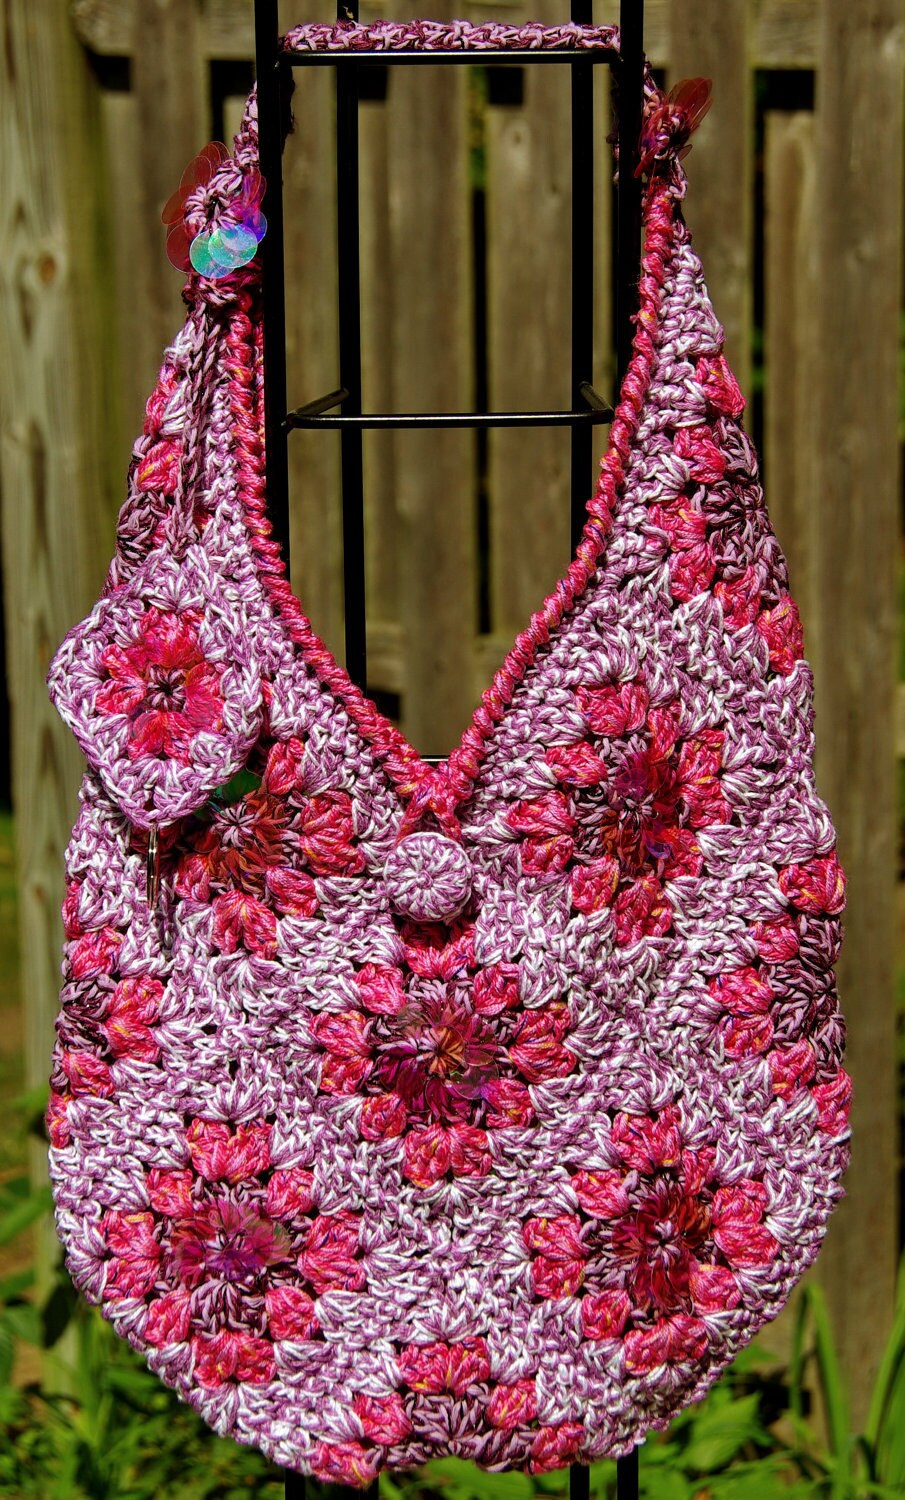 Granny Square Tote Bag : Granny Square Bag Tote Handmade Crochet Pink Sequin Bling. iPad ...